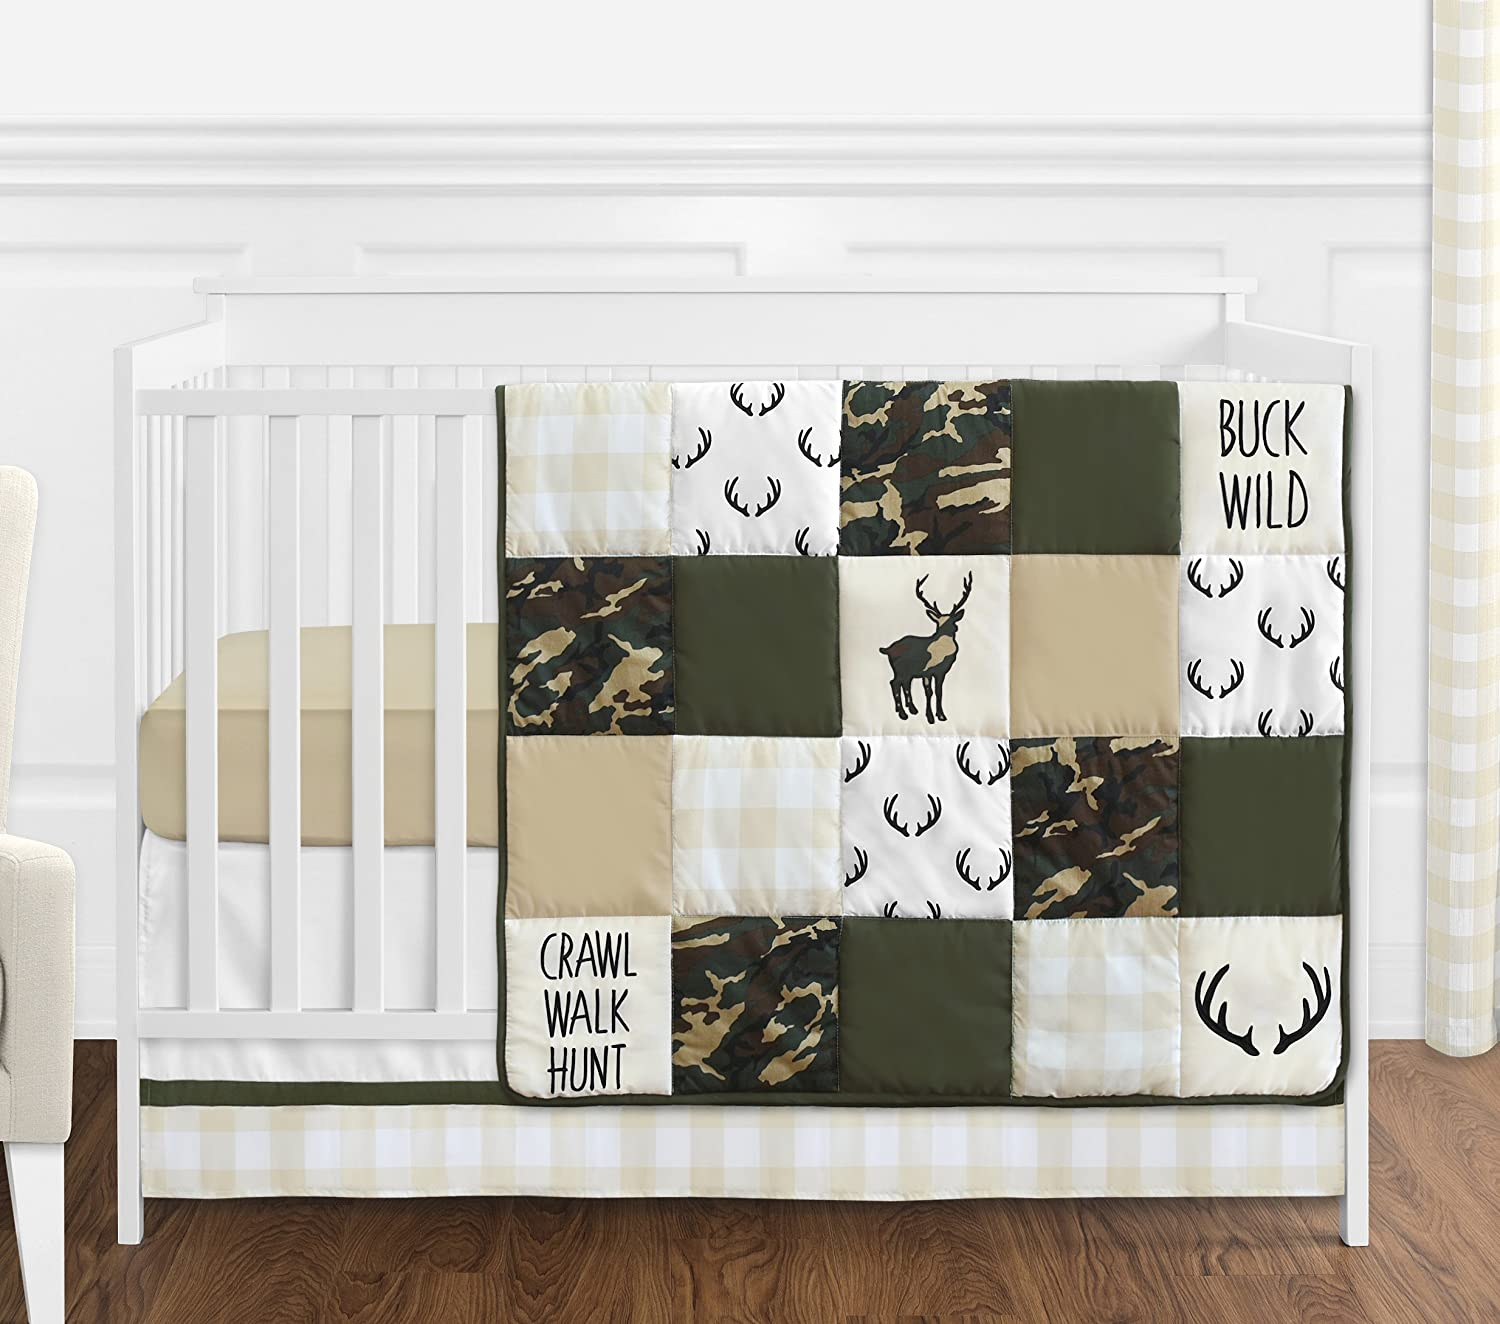 Sweet JoJo Designs Green and Beige Deer Buffalo Plaid Check Woodland Camo Baby Boy Crib Bedding Set Without Bumper - 4 Pieces - Rustic Camouflage